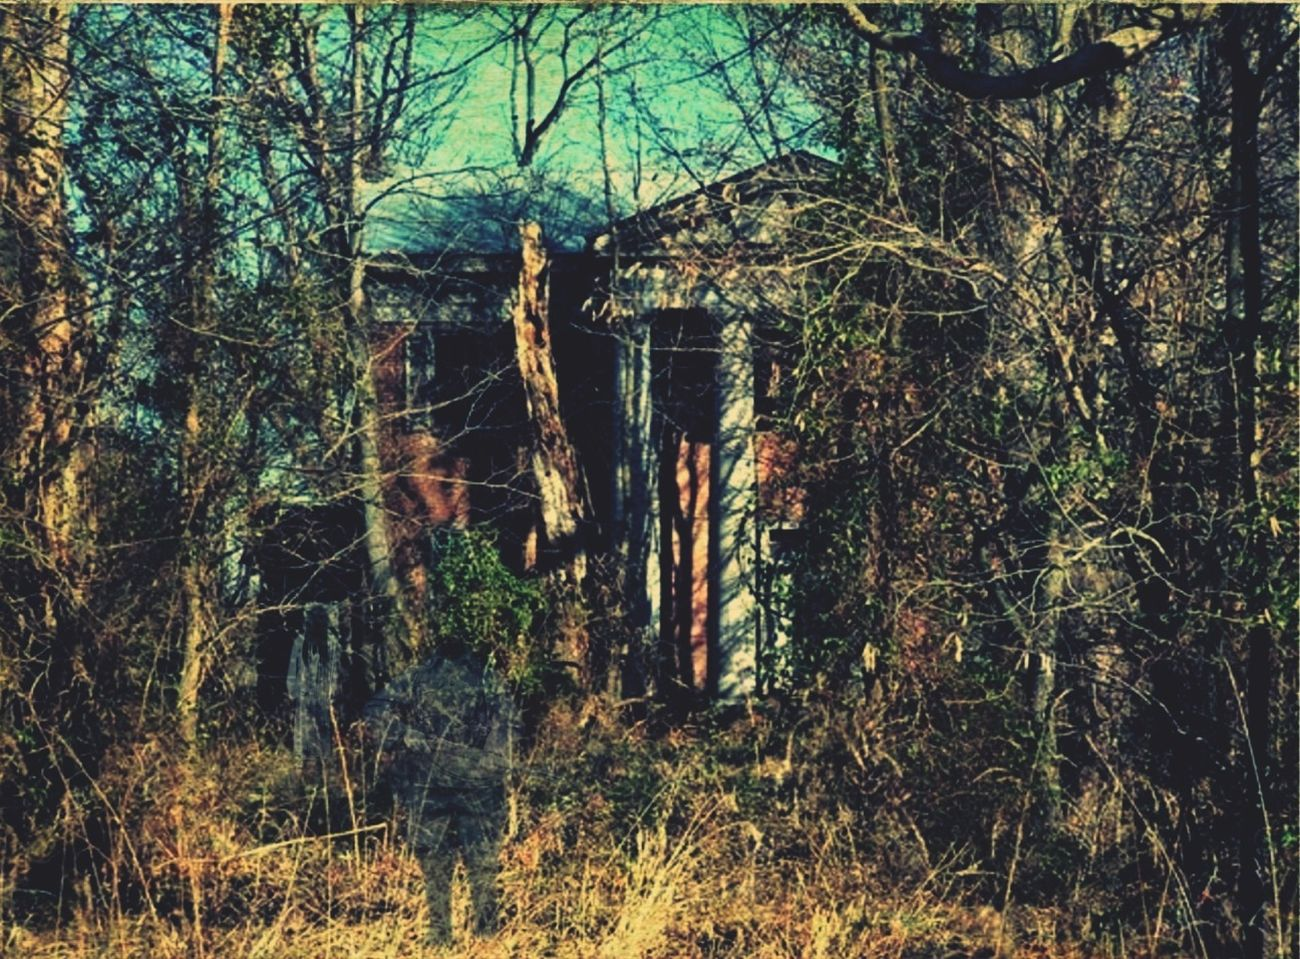 Horror Look Into The Darkness  Ghosts And Ghouls EyeEm Best Edits